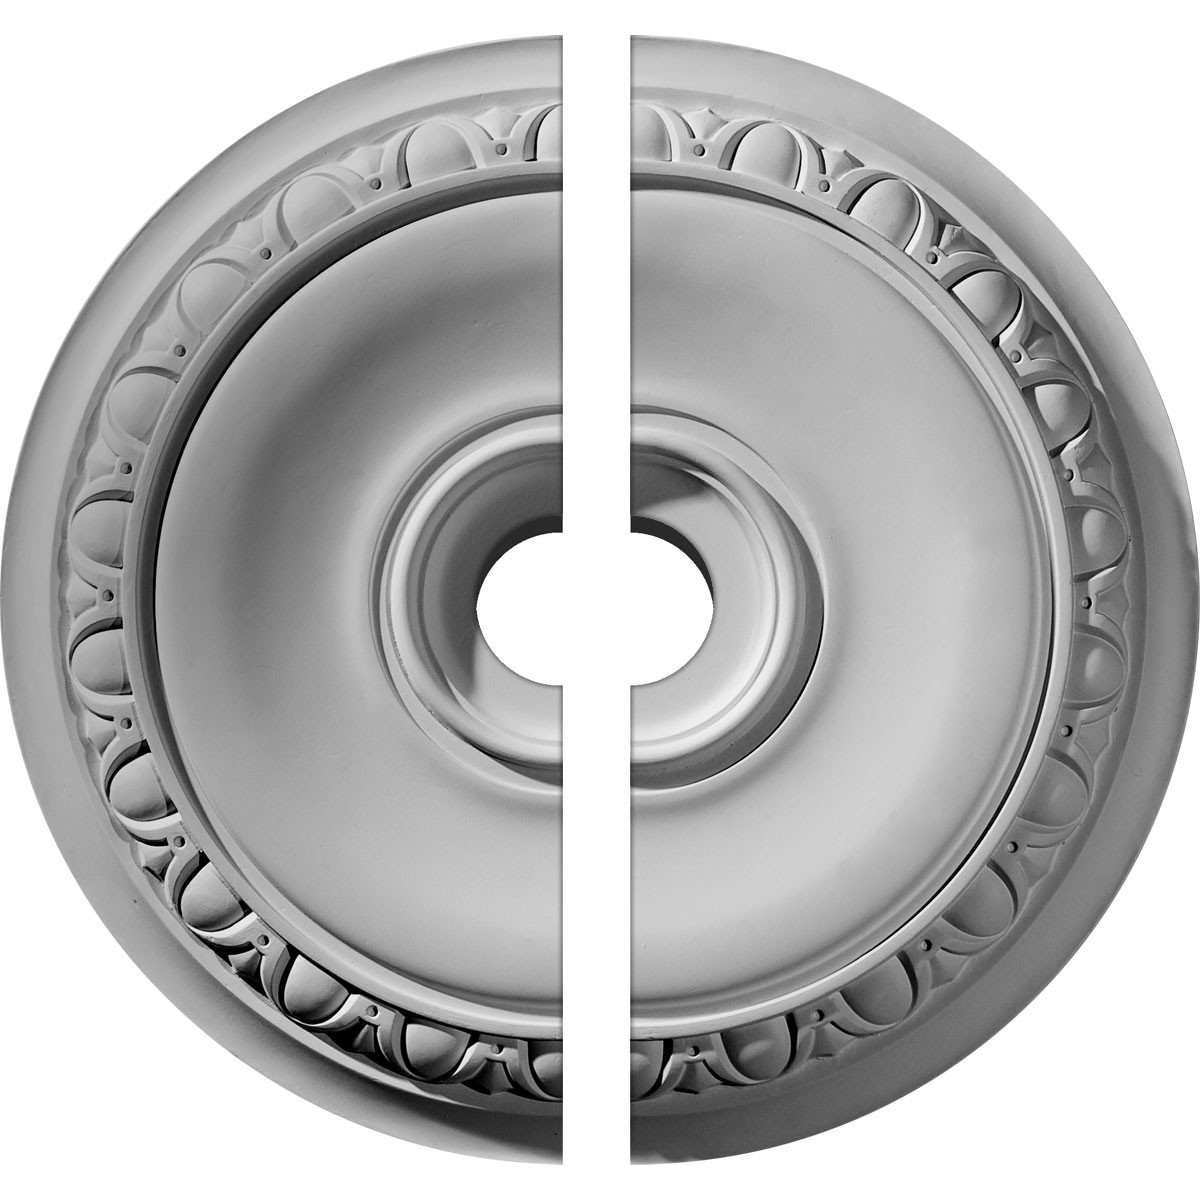 """EM-CM24CA2-03500 - 24 1/4""""OD x 3 1/2""""ID x 1 1/2""""P Caputo Ceiling Medallion, Two Piece (Fits Canopies up to 6"""")"""